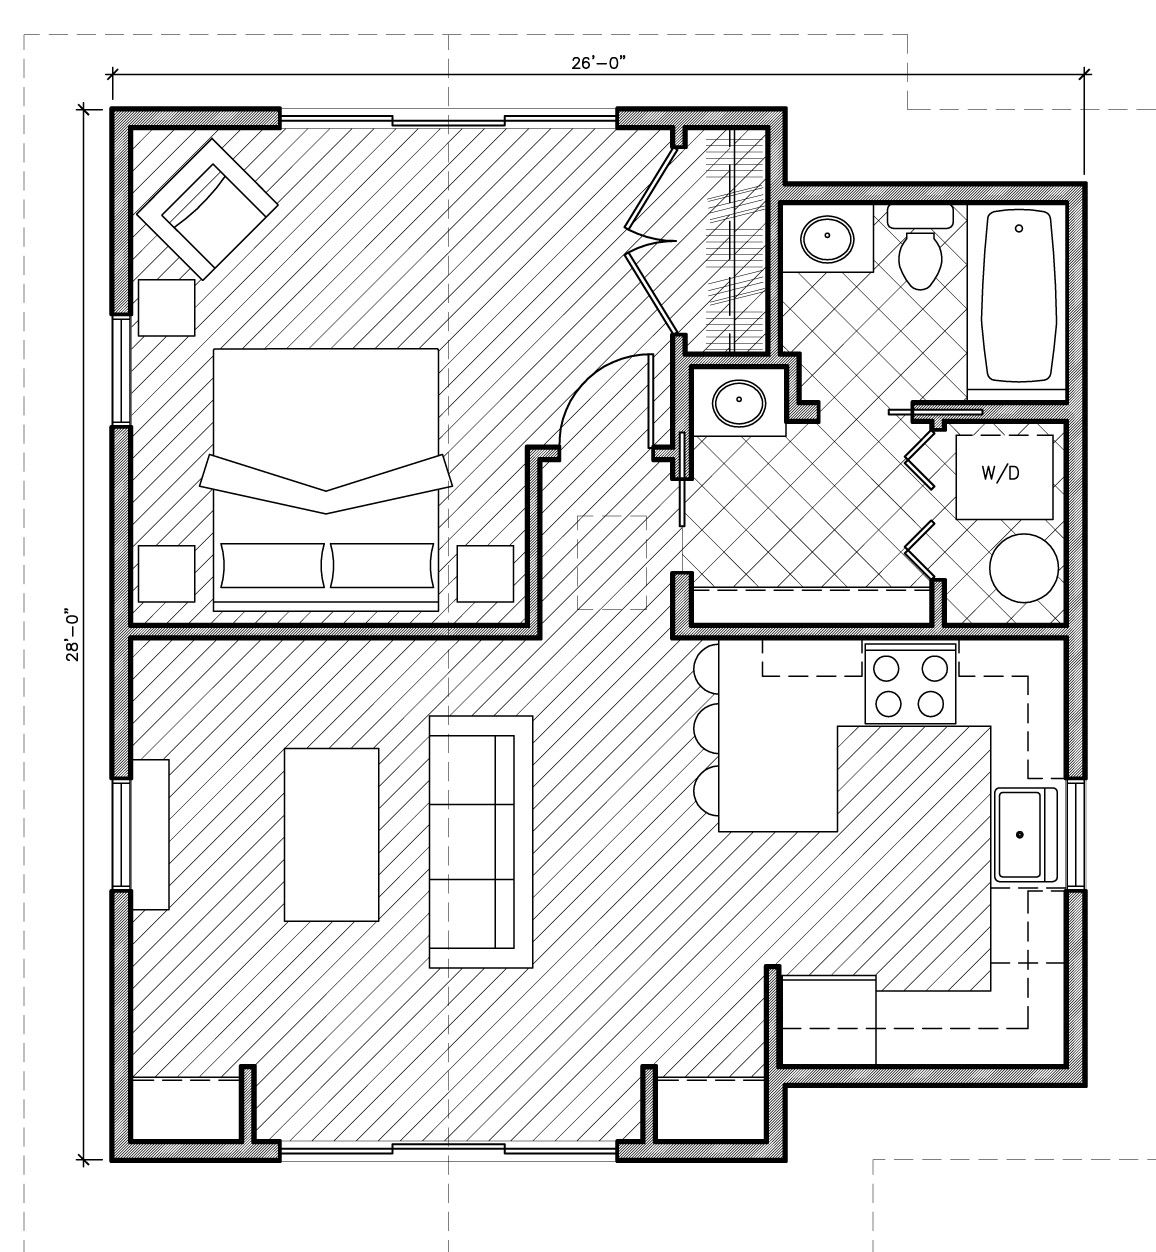 Home Plan Collection One Bedroom House Plans One Bedroom House Square House Plans